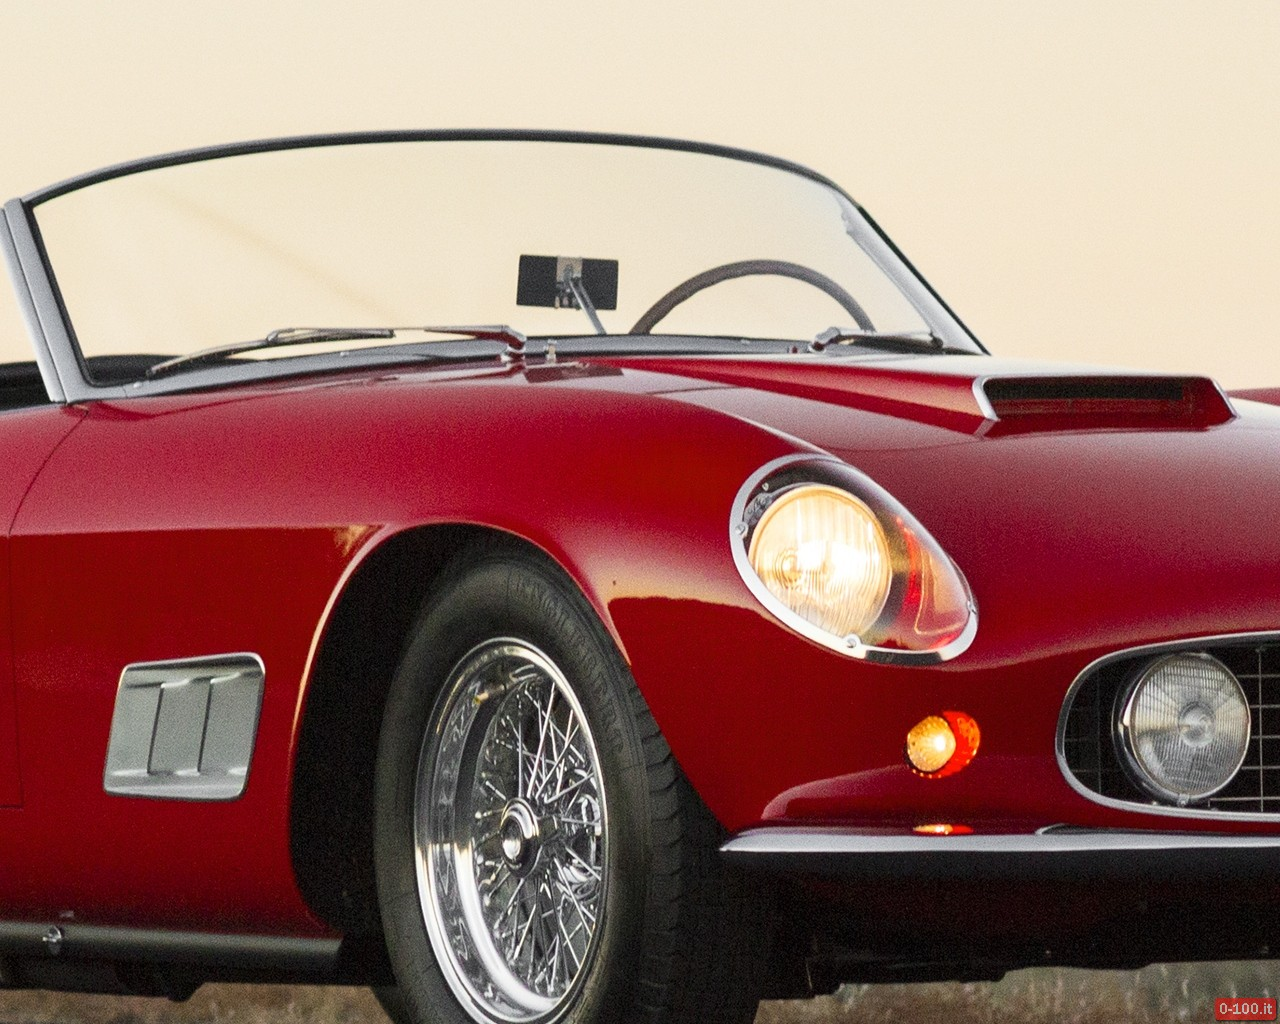 ferrari-250-gt-california-1055gt-rm-auctions-aizona-2014_0-100_29